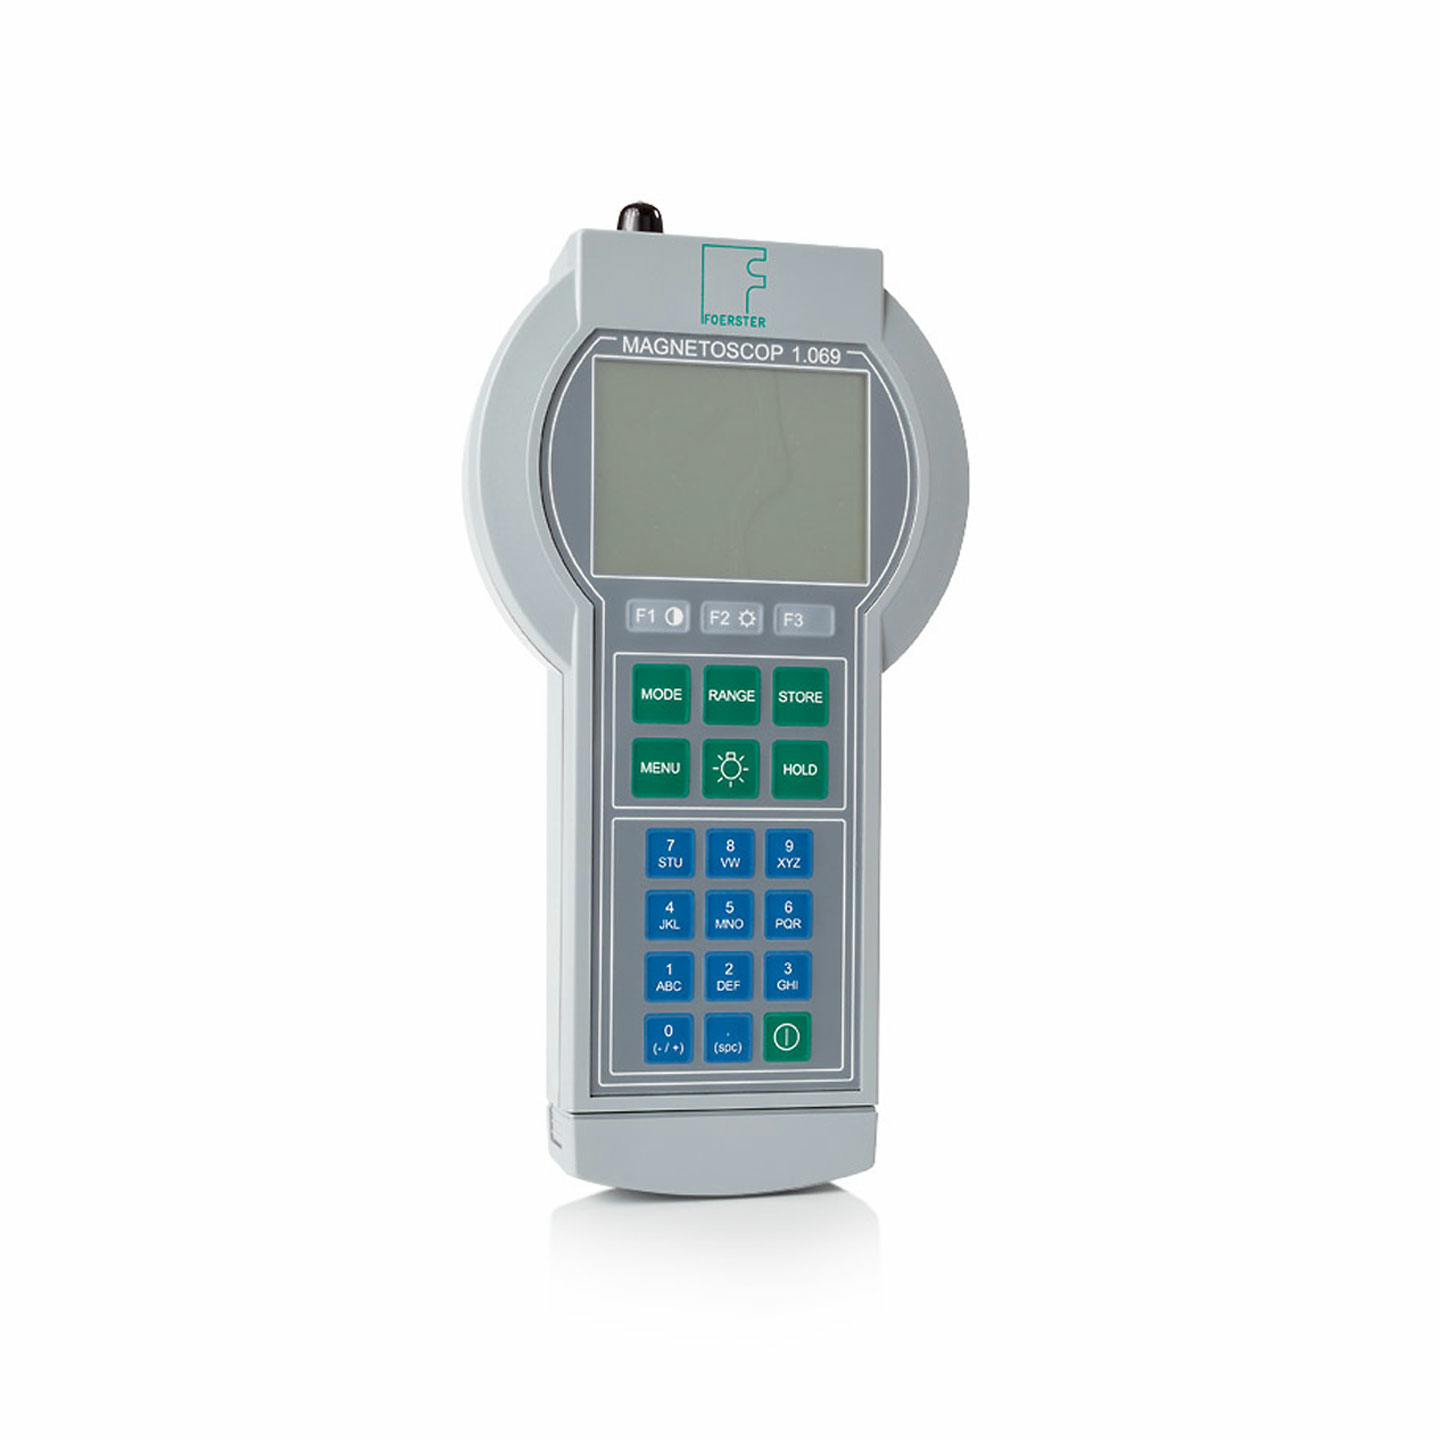 Portable Precision Fluxgate Magnetometer, Permeability Meter, Susceptibility Meter, Gaussmeter, Teslameter